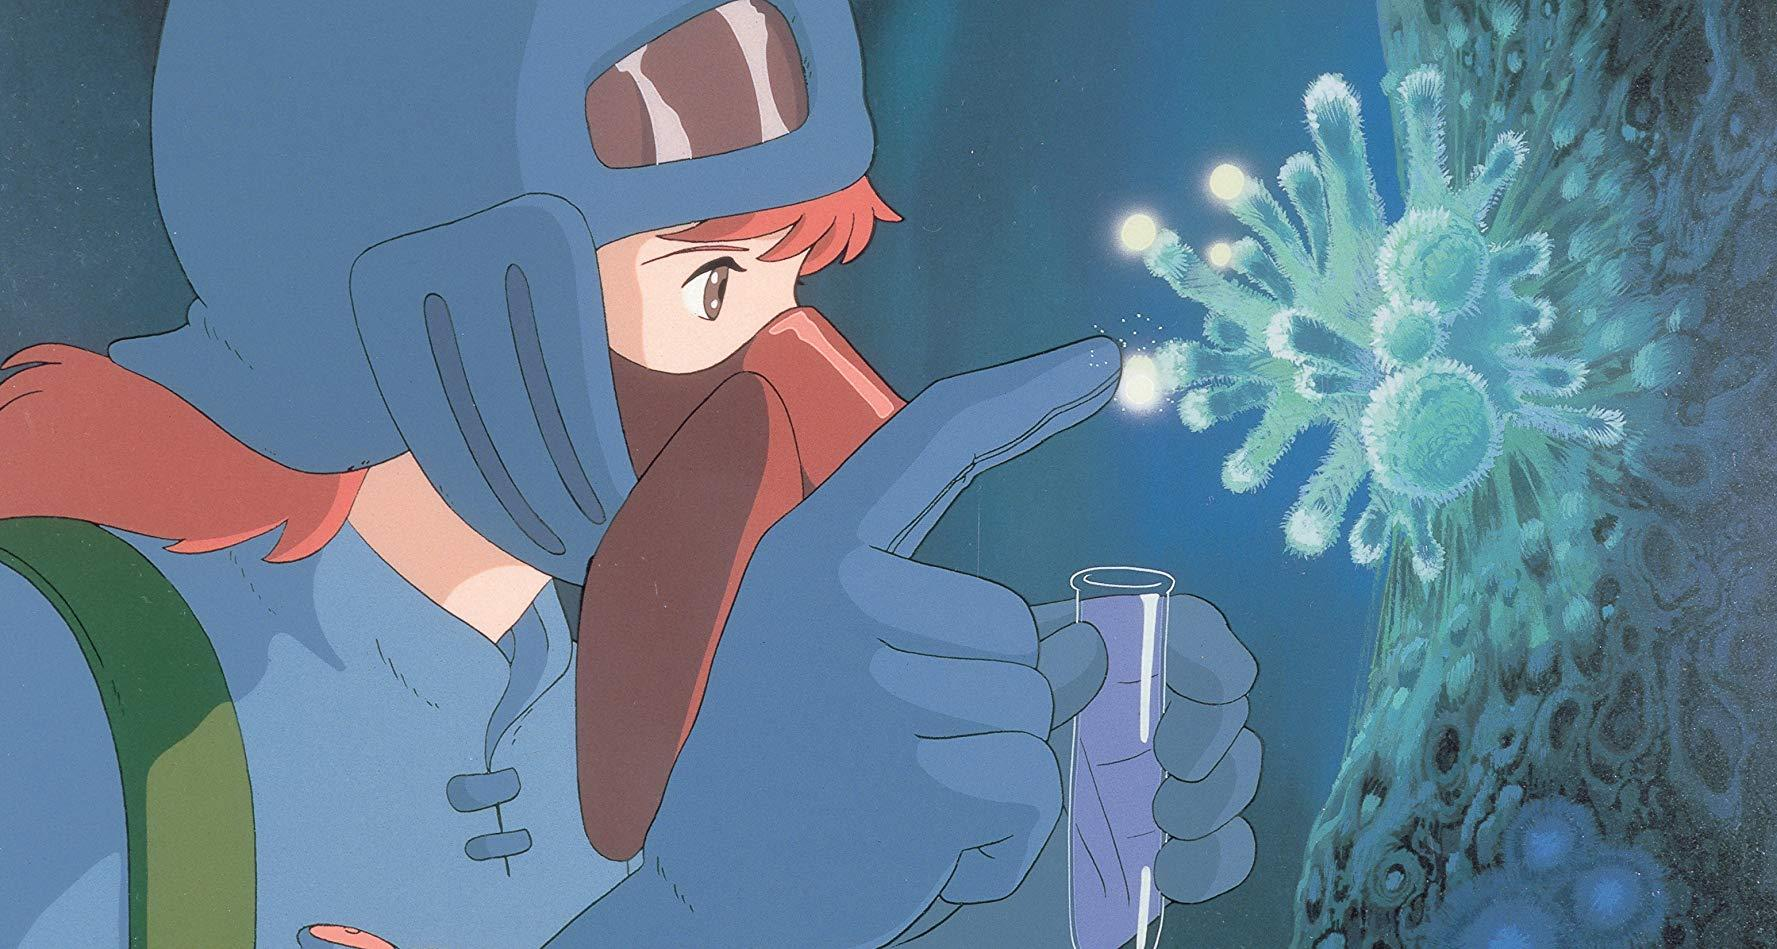 فيلم Nausicaa Of The Valley Of The Wind 1984 مترجم